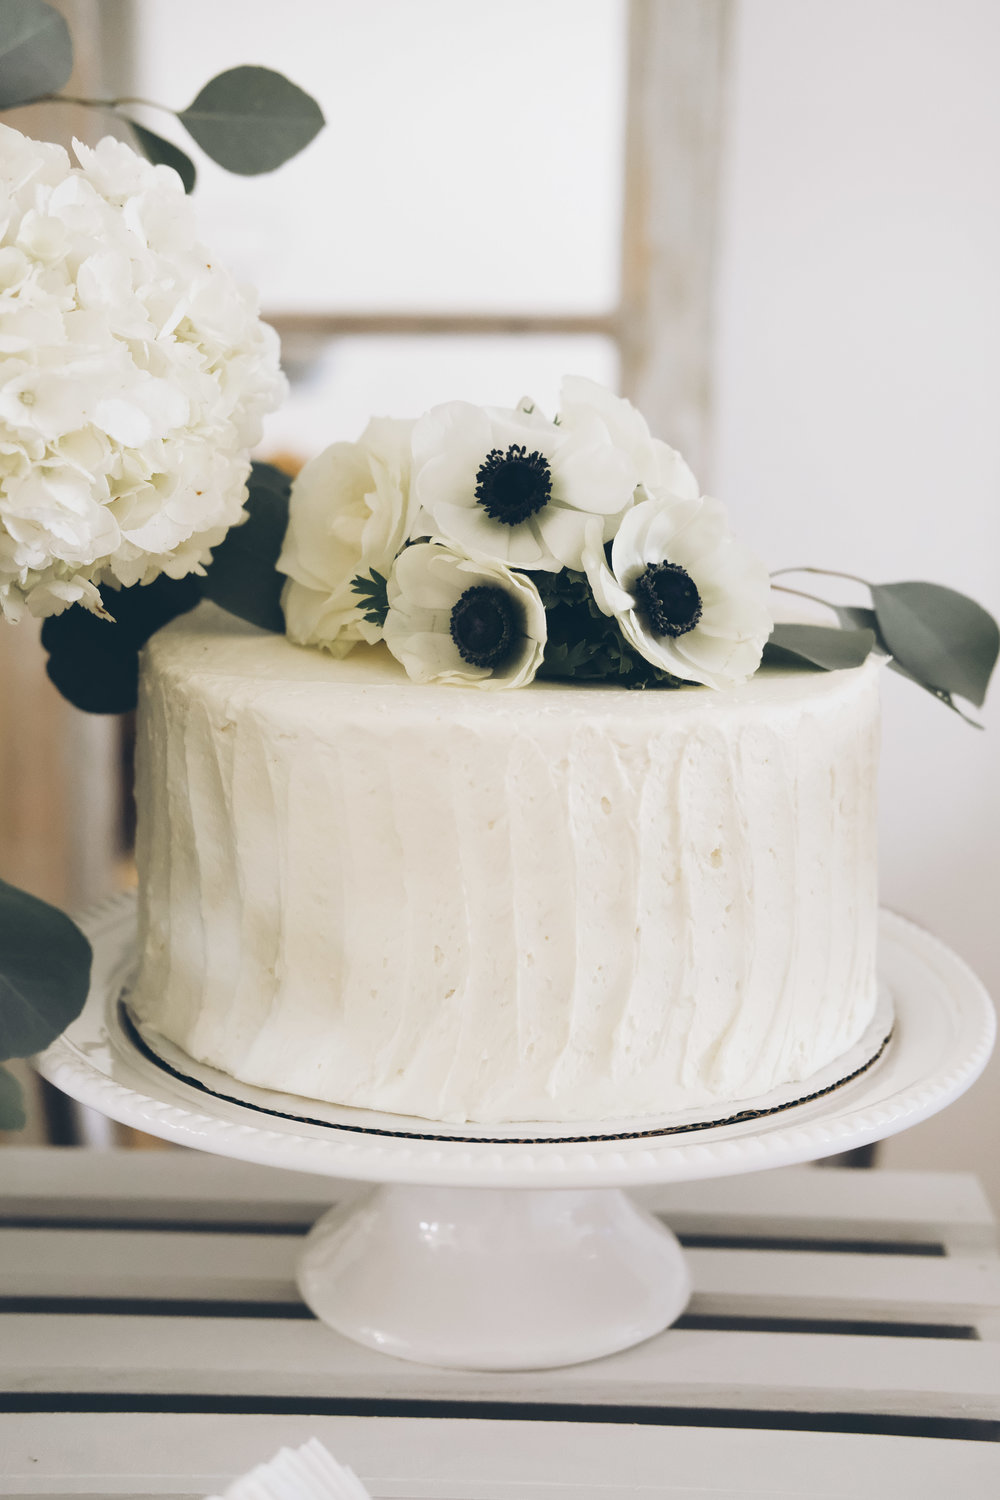 French Market Baby Shower.  Black and white boy baby shower.  French themed baby shower.  Neutral baby shower.  Funfetti baby shower cake with anemones, roses, and silver dollar eucalyptus.